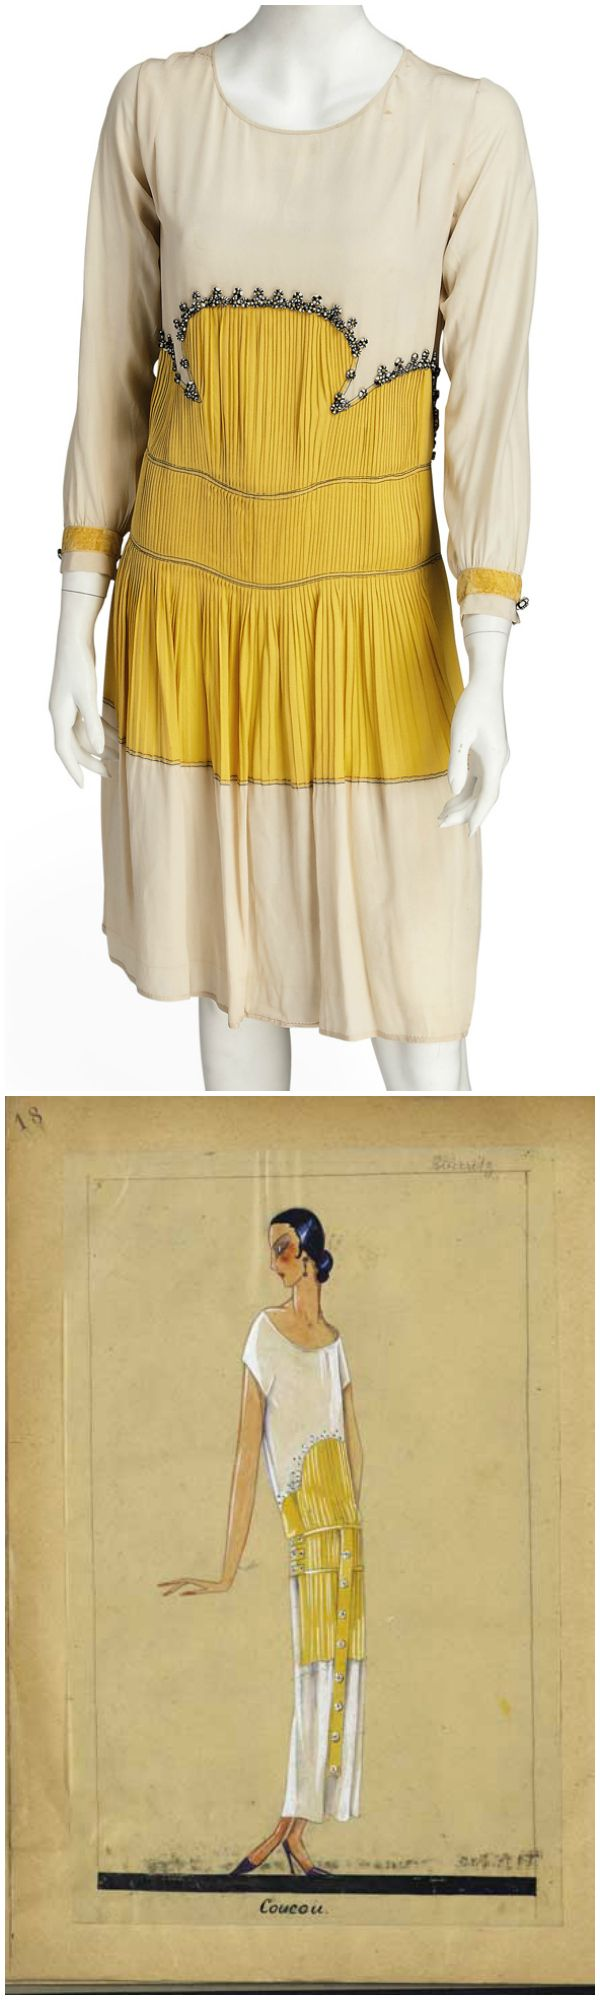 COUCOU, A JEANNE LANVIN DAY DRESS, 1923, sold by Christie's in November 2012. The bodice and hem of ivory crepe, the bodice and skirt of pleated yellow crepe, trimmed with white buttons bound in black silk twine, the sleeves long, with decorative buttons, the back with yellow crepe tie at the waist. The illustration, courtesy of Archives Lanvin, shows that the original design called for a longer dress. According to Christie's, it may have been shortened to conform to hemlines of the mid…